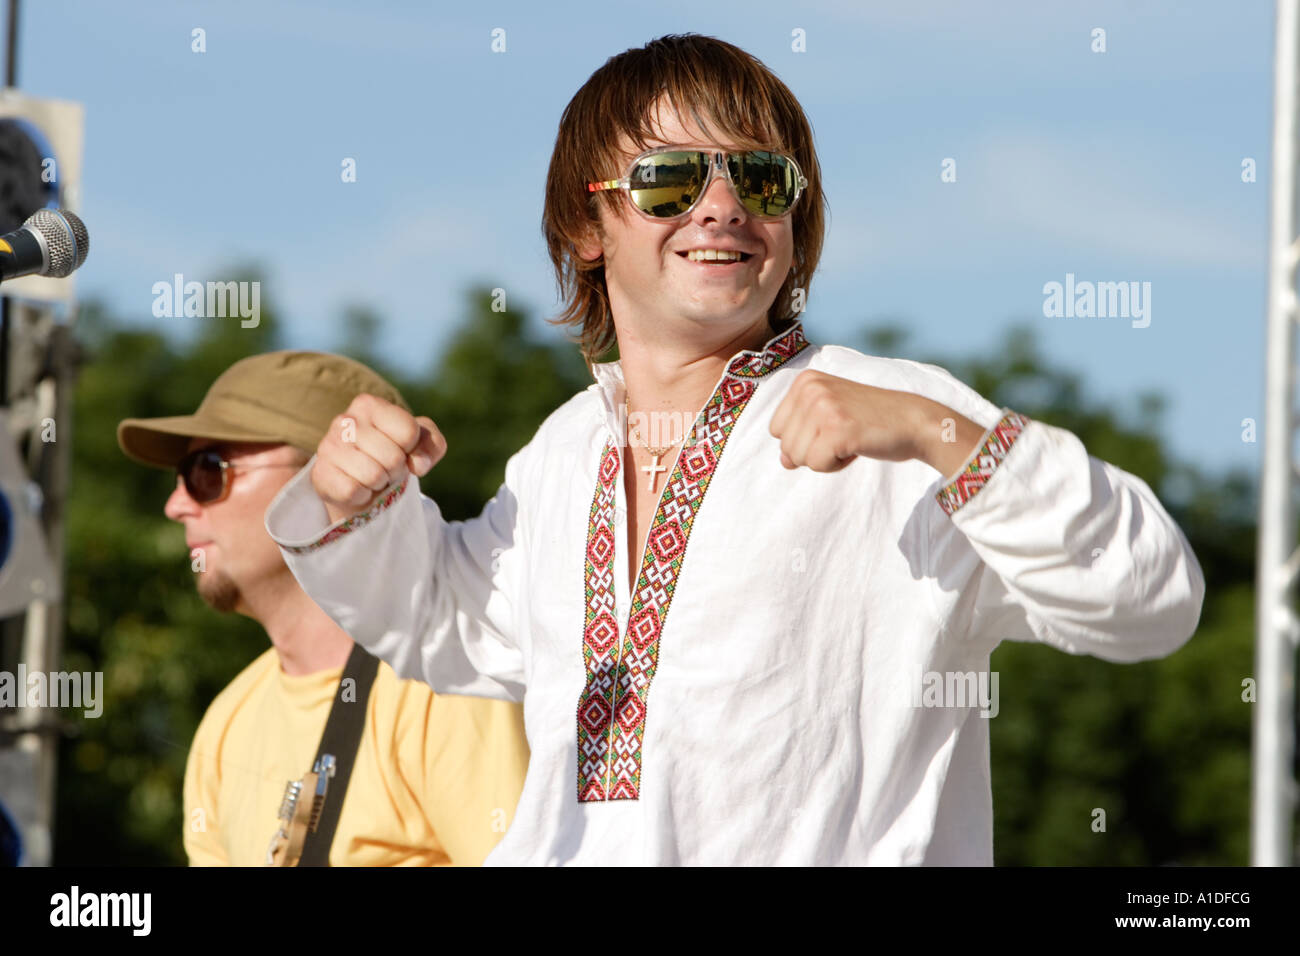 UKRAINE KIEV. July 09, 2006. Singer of the ukrainian ethno hip hop band HUTSUL KALIPSO Bogdan Fedchuk - Stock Image